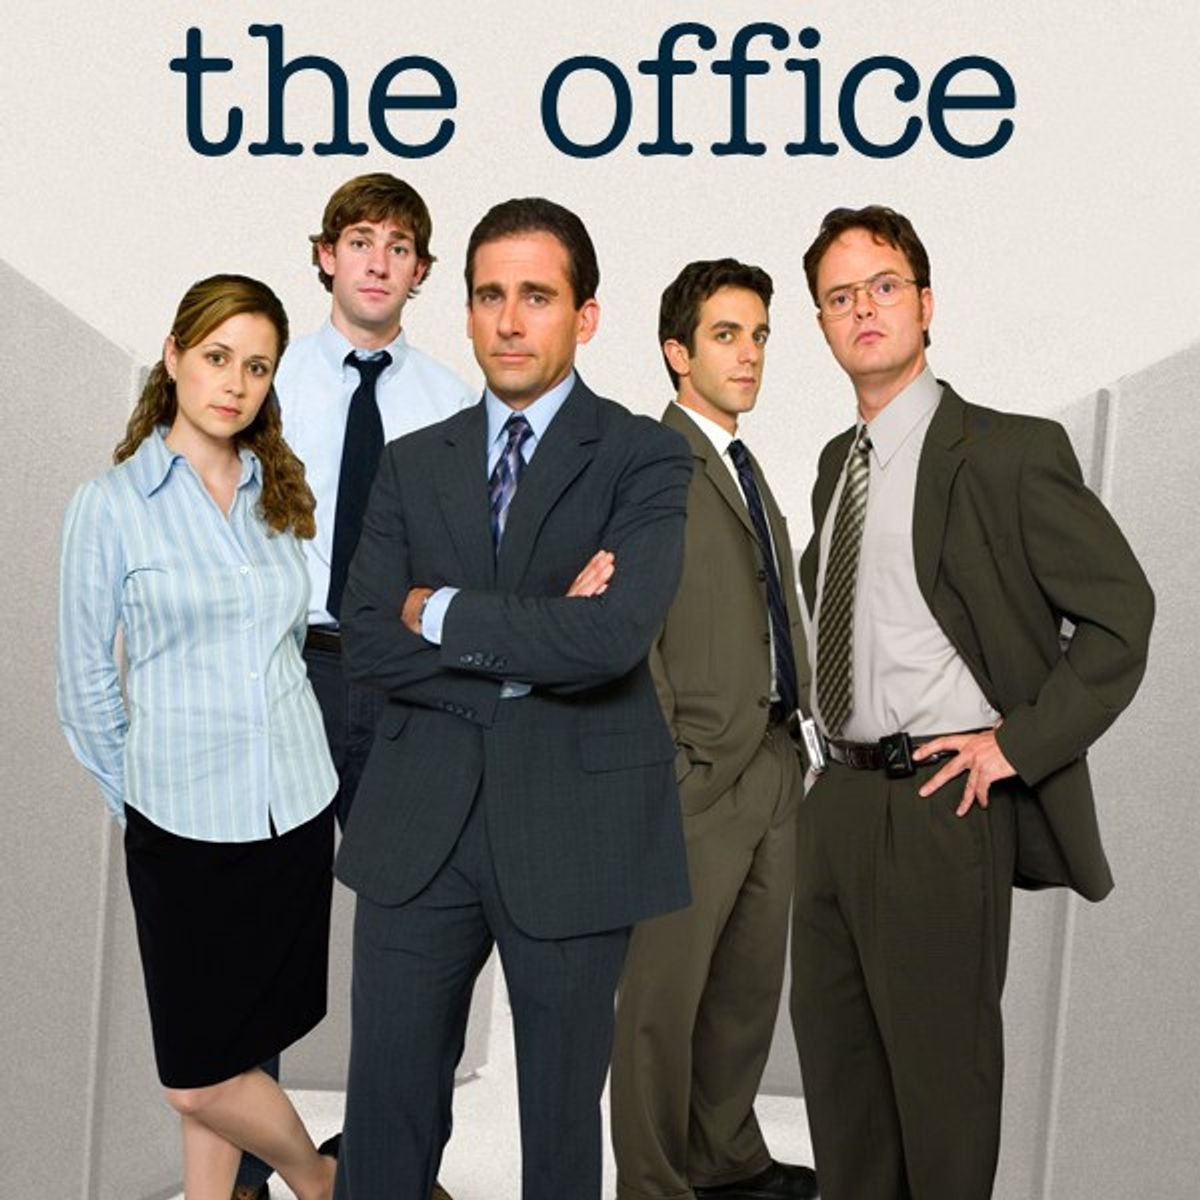 7 Gifs From The Office That Accurately Represent College Life